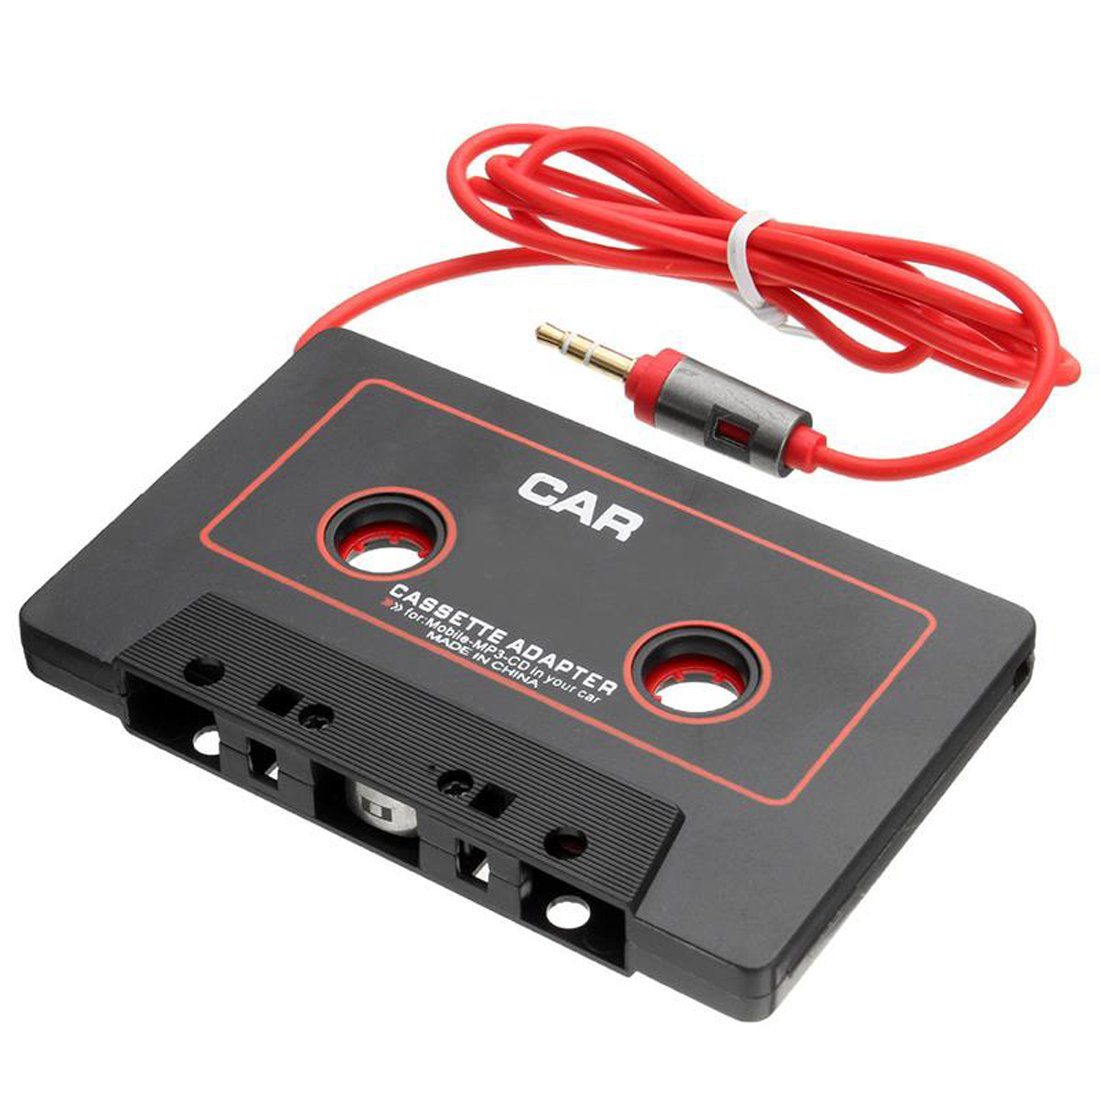 CD MP3 Players Alotm Universal Car Audio Cassette Player Adapter Converter with 3.5mm Jack Compatible All Smartphoen Android Phones